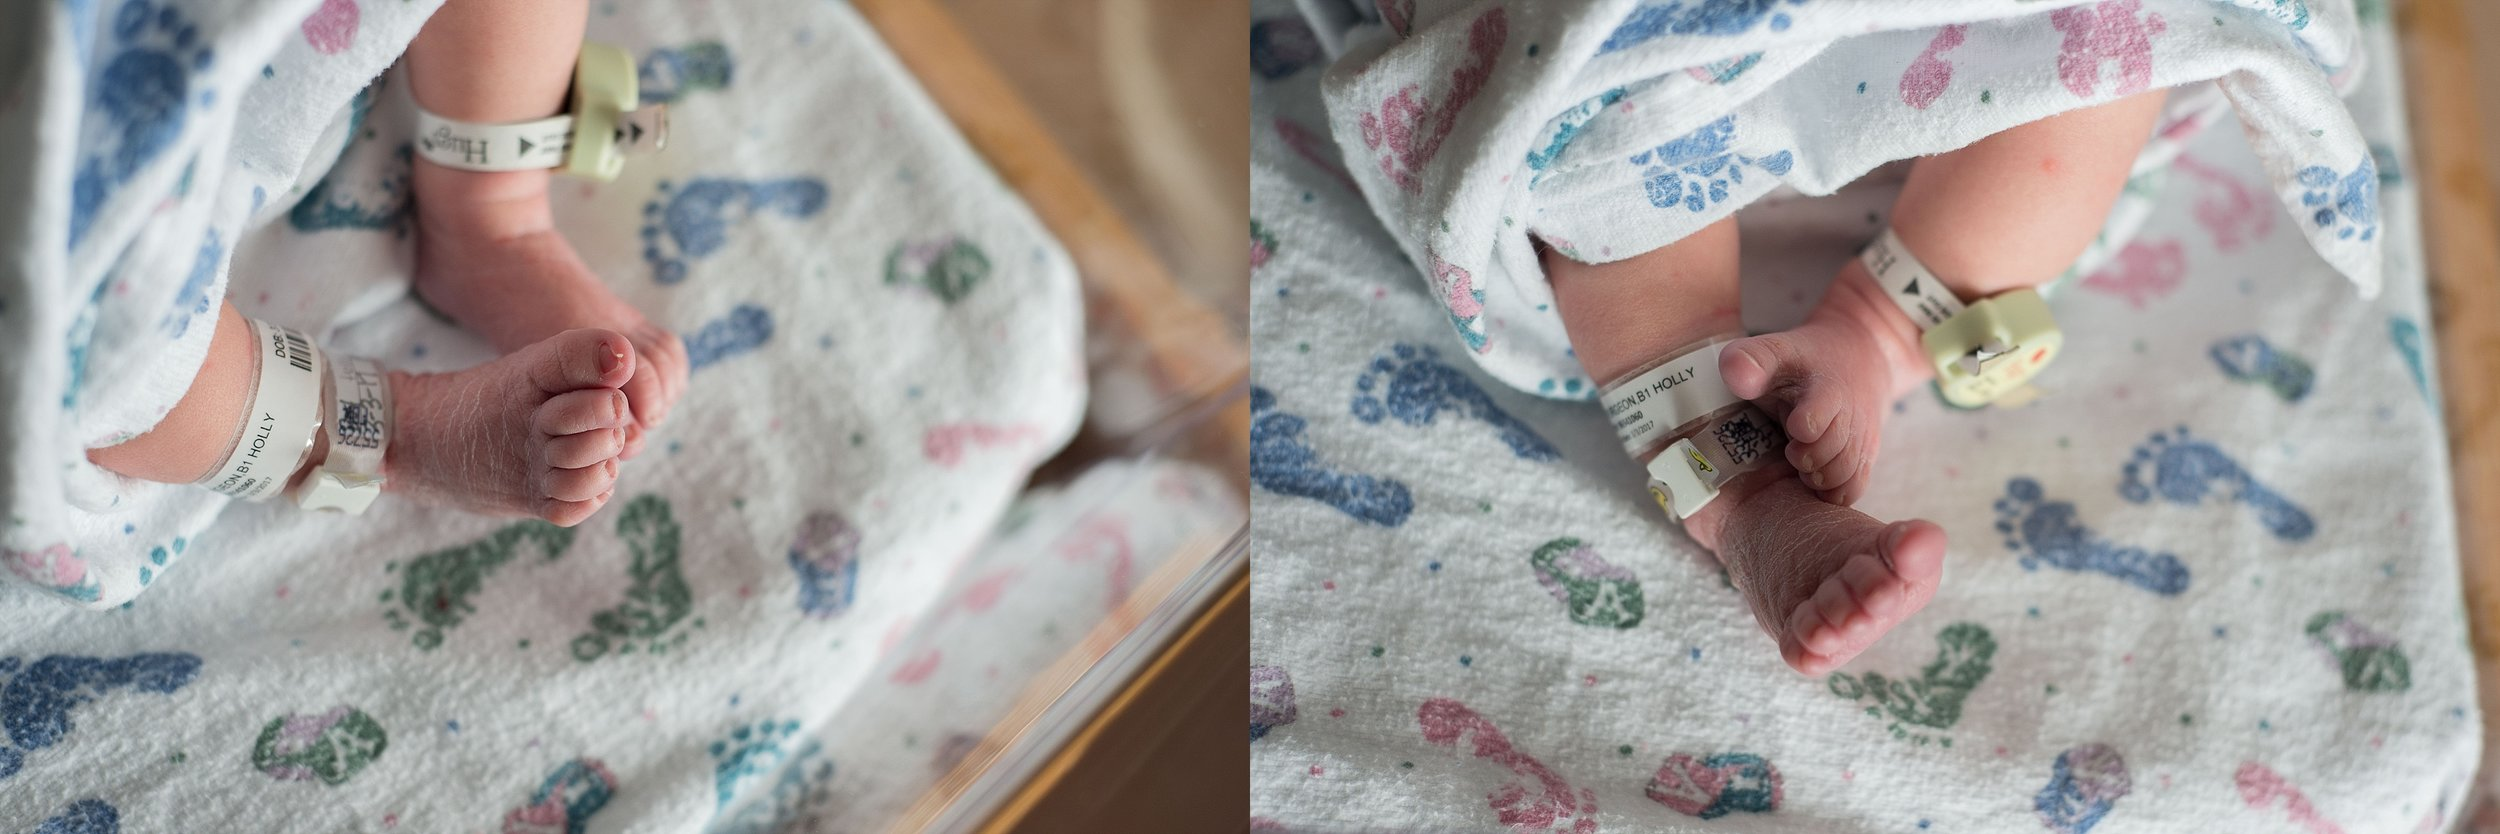 Brittney Hogue focuses on wrinkly baby feet during newborn photography session.